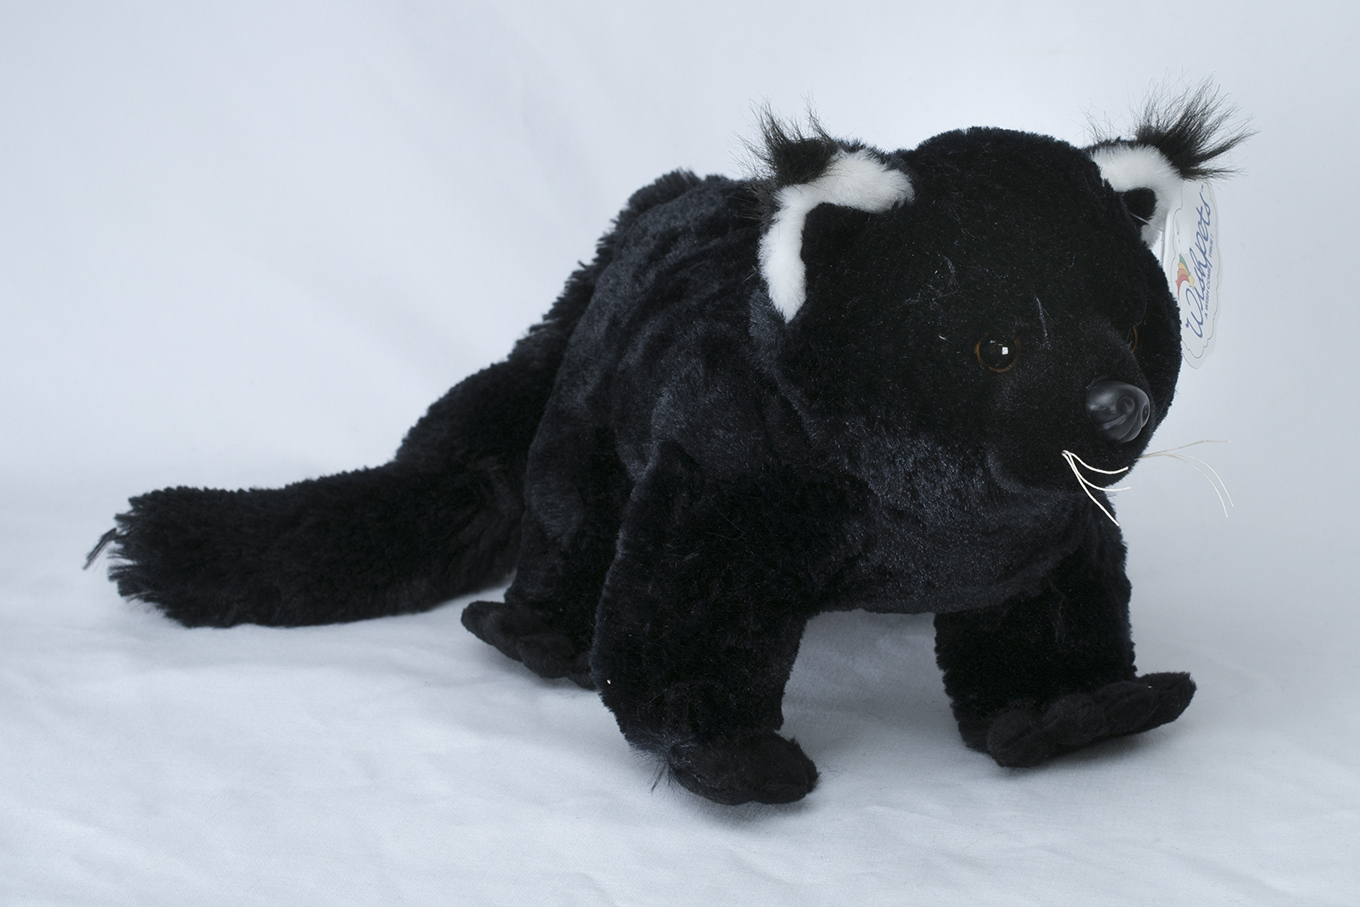 (Currently Unavailable) Plush Stuffed Binturong